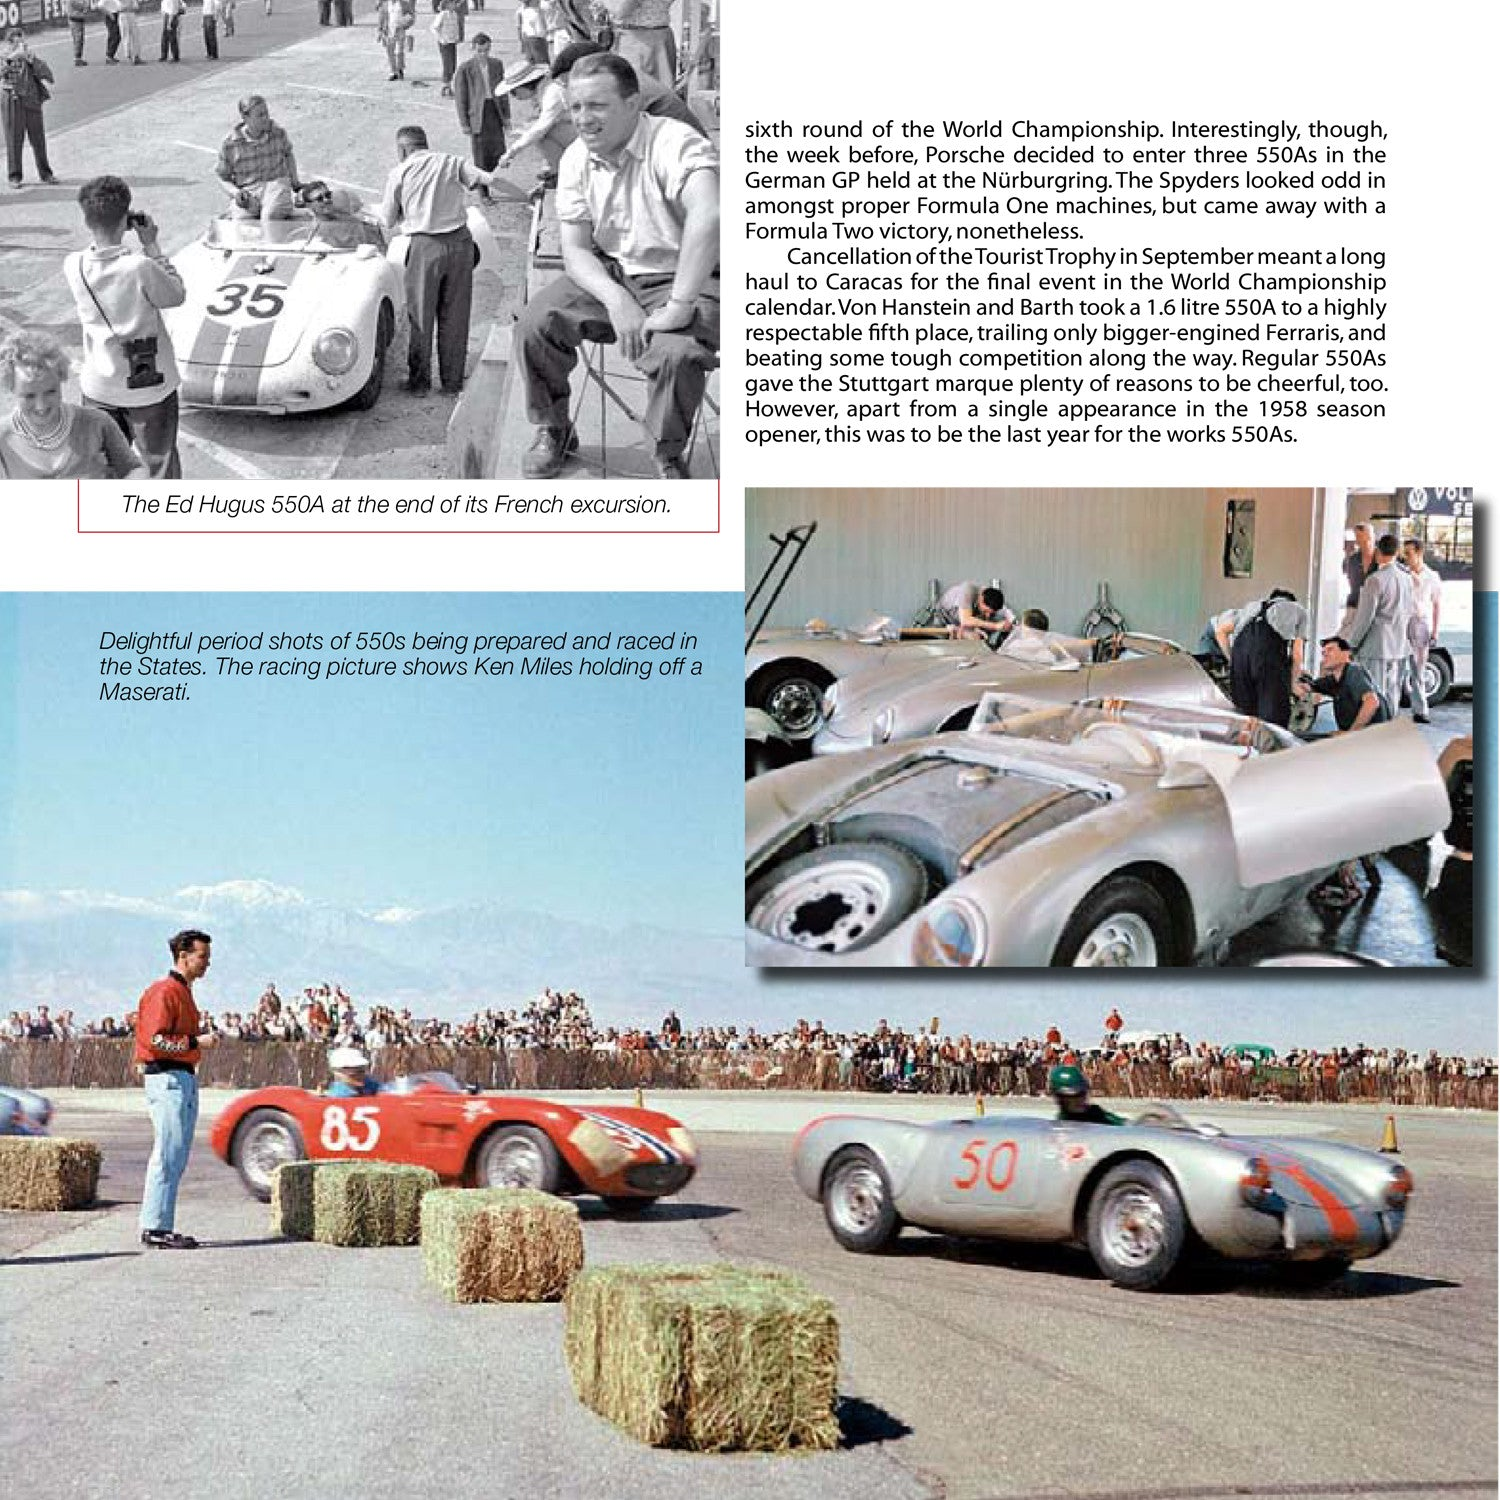 Porsche Racing Cars - 1953 to 1975